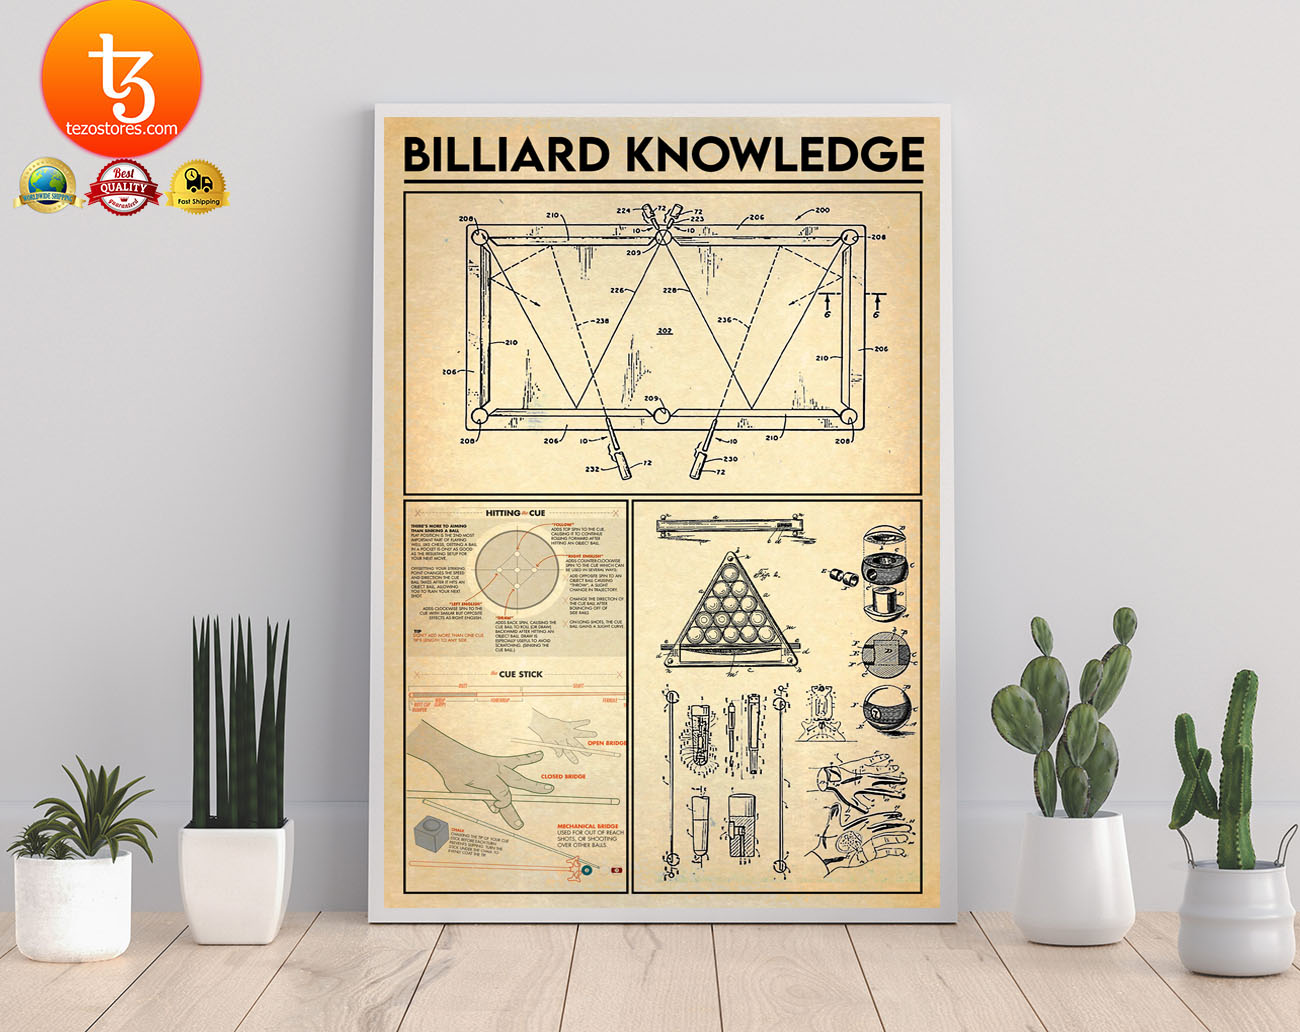 Billiard knowledge poster 21